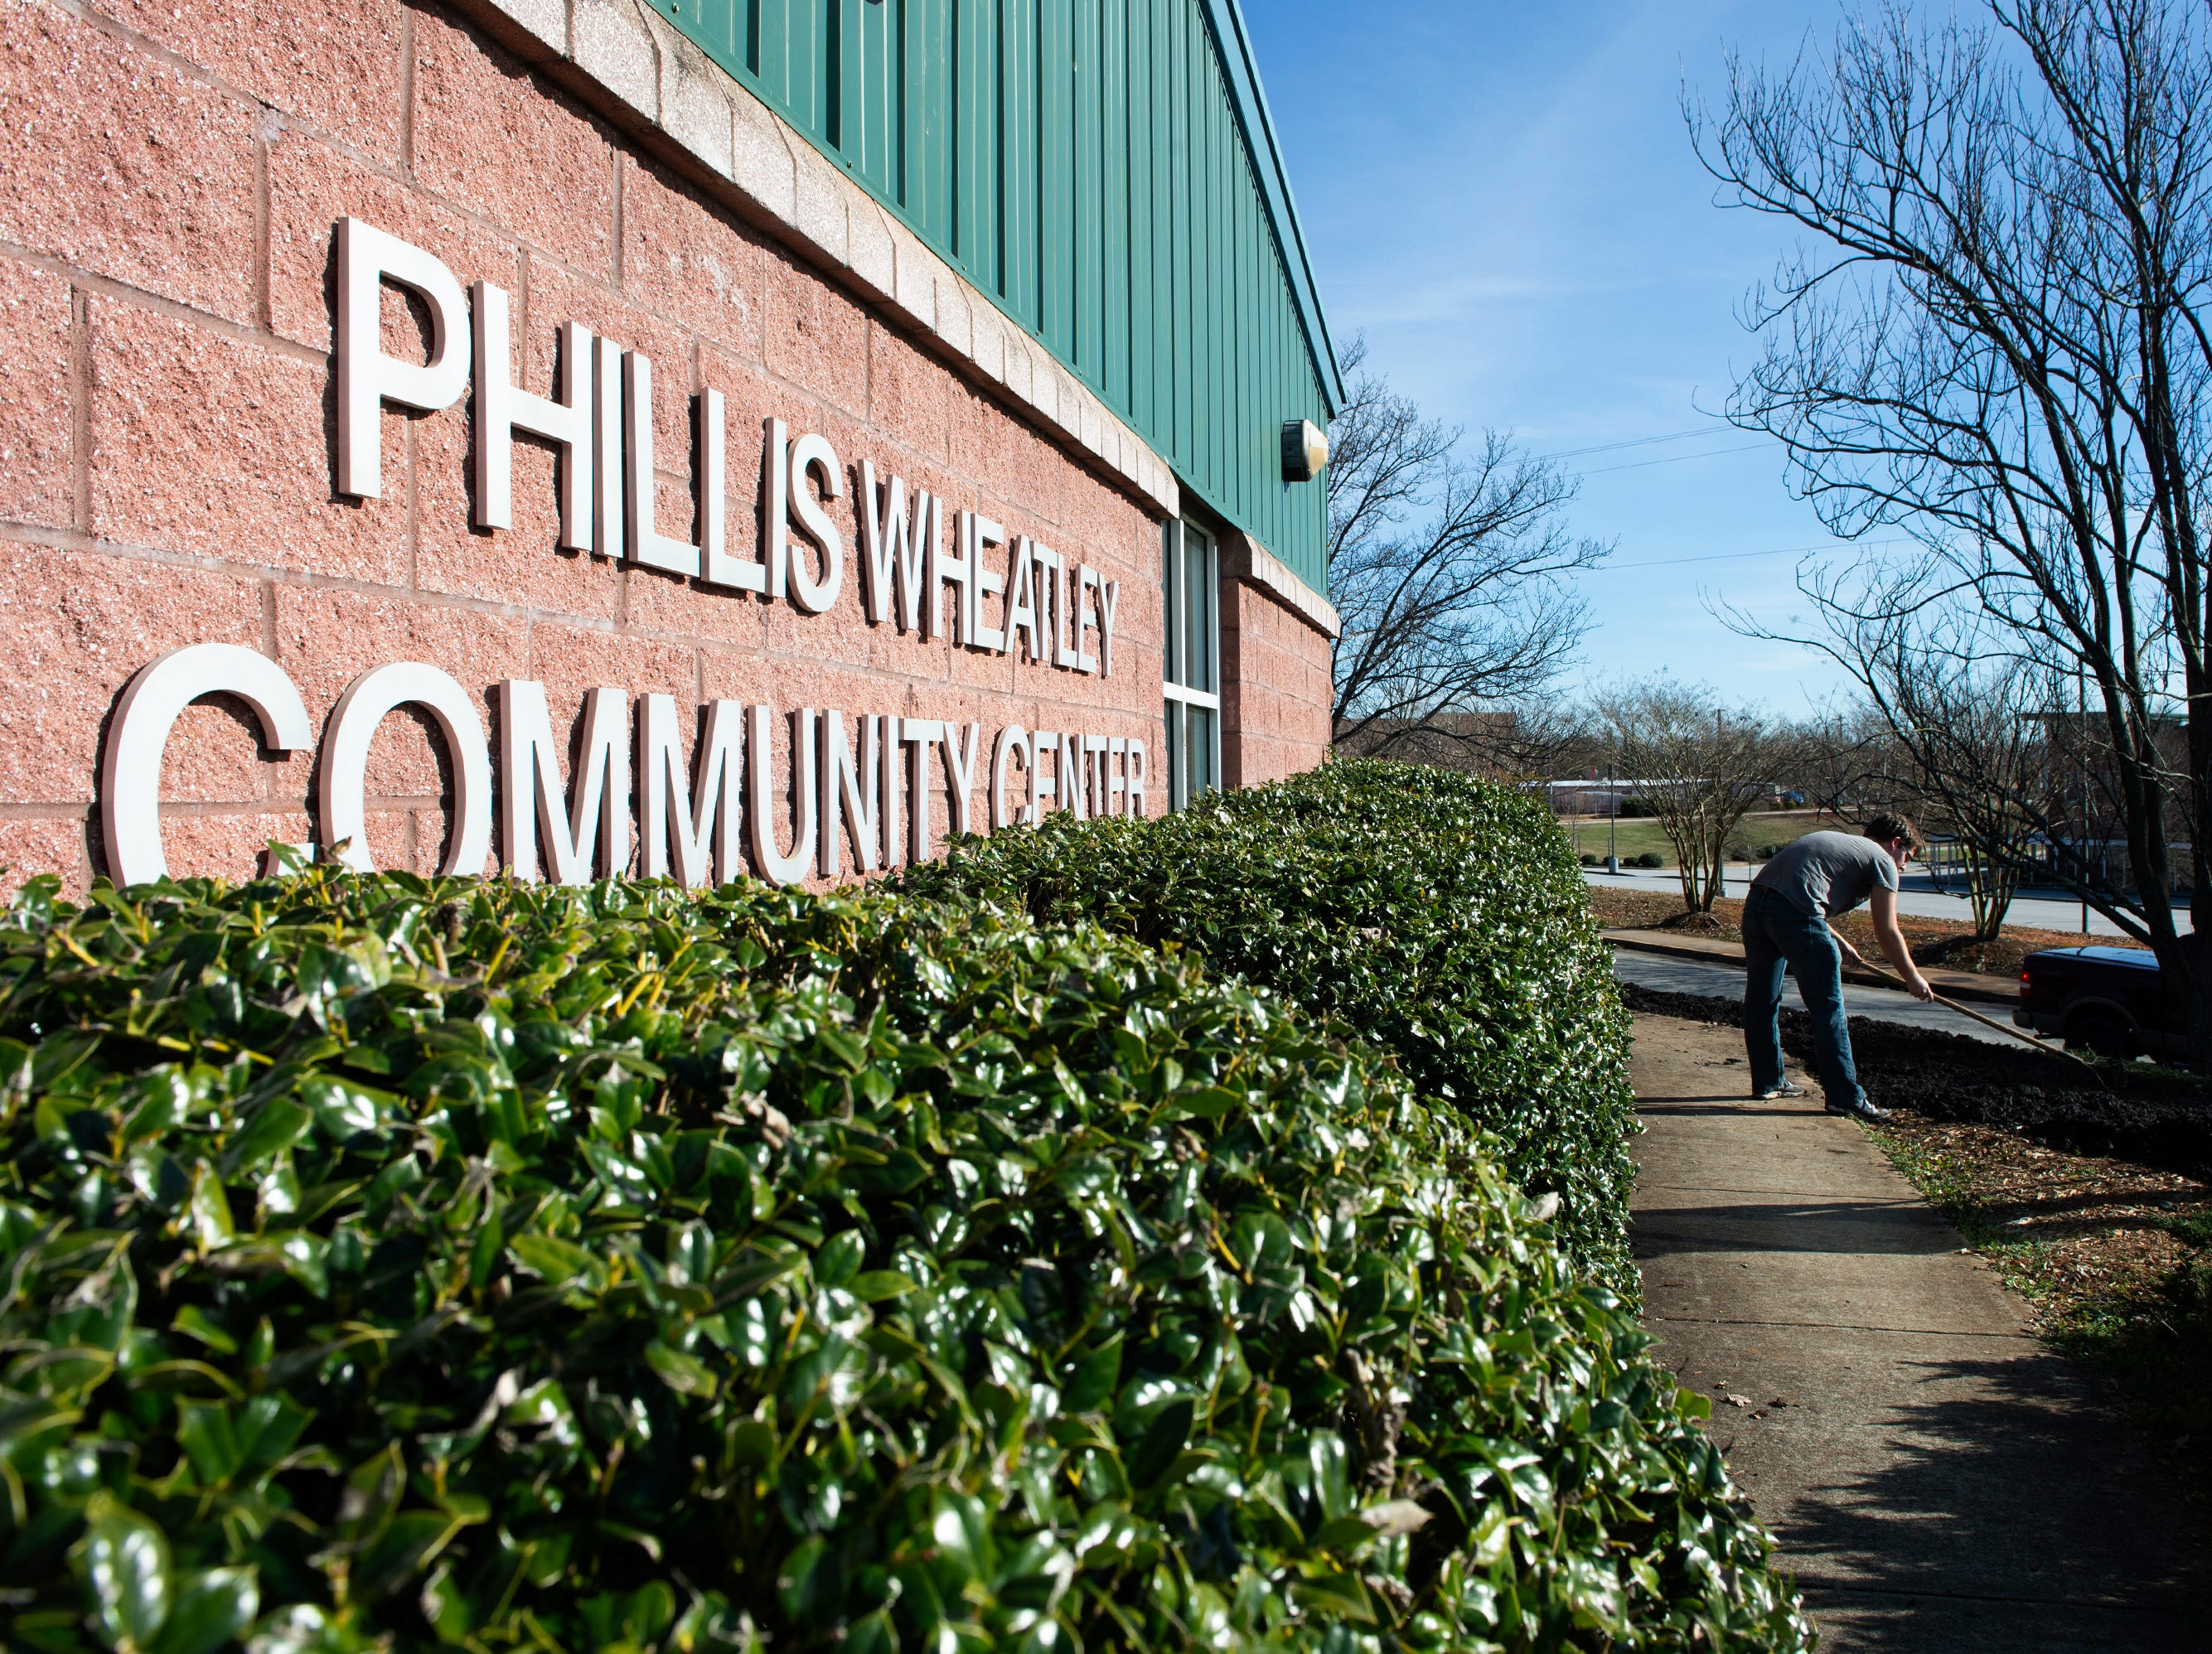 Bob Jones University students volunteer at the Phillis Wheatley Center in Greenville on Martin Luther King, Jr. Day Monday, Jan. 21, 2019.